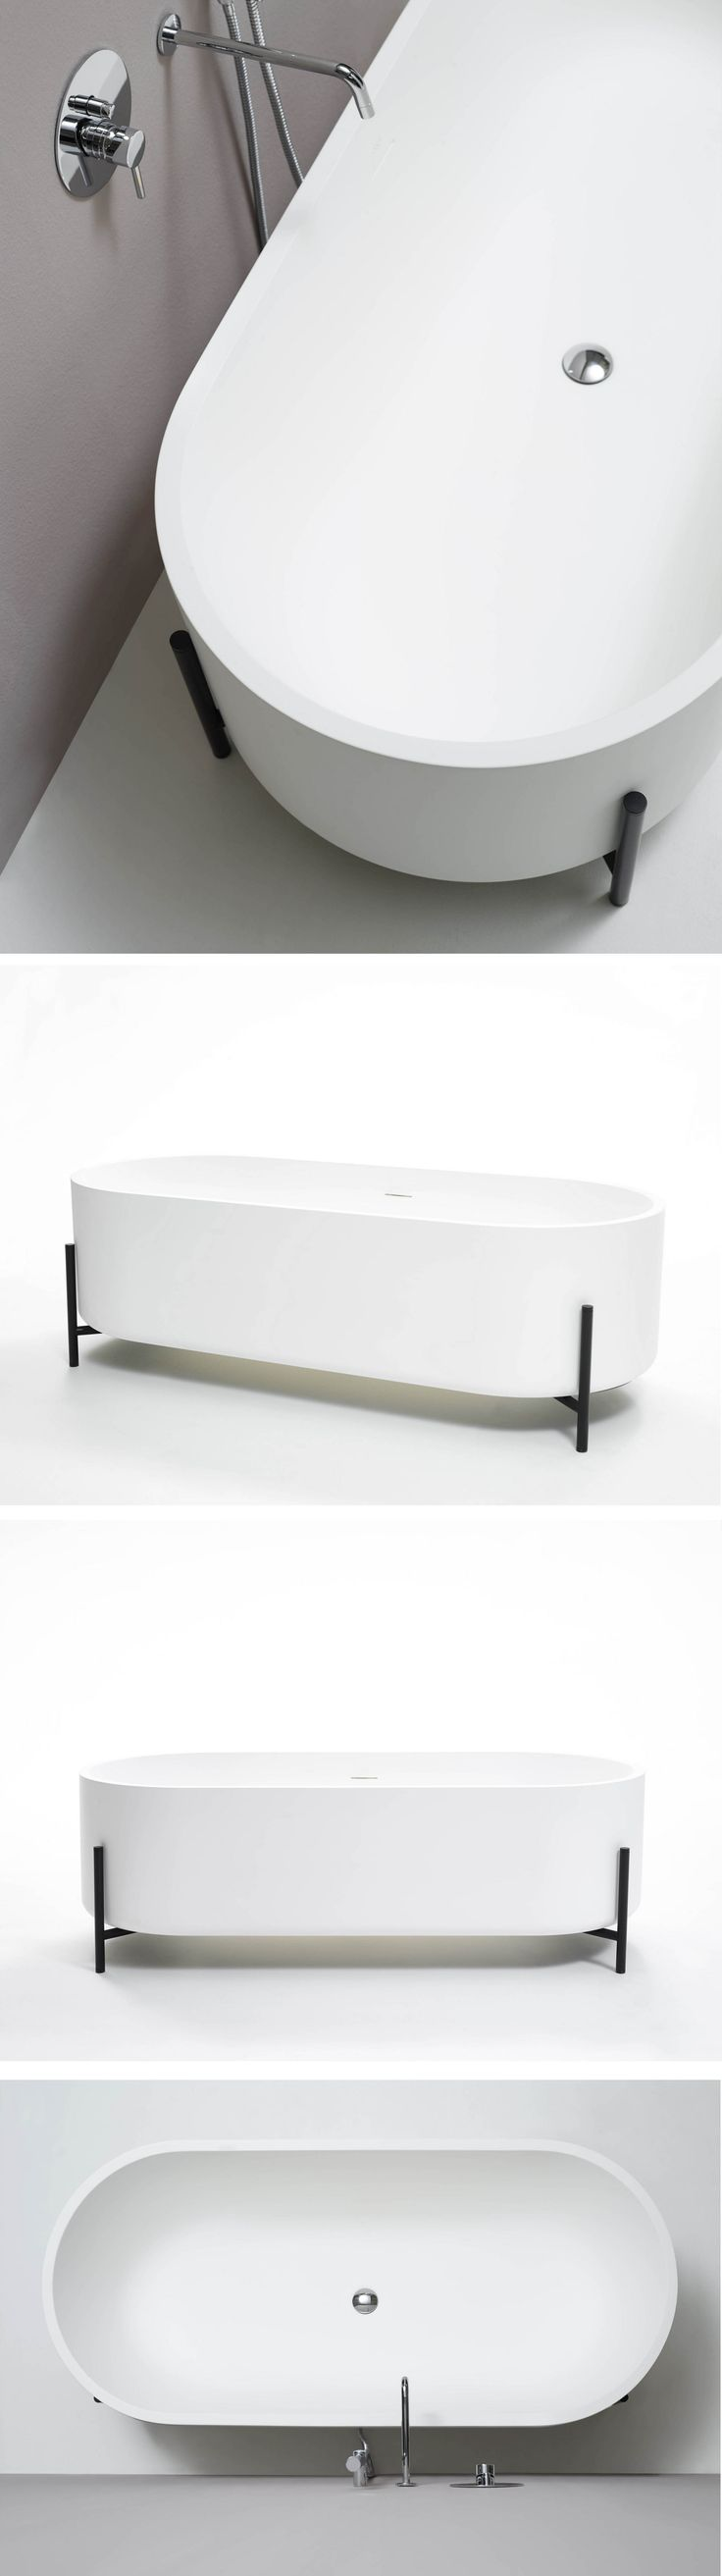 Freestanding Livingtec® #bathtub, design by NORM ARCHITECTS  for @extdesign   #bathroom #design